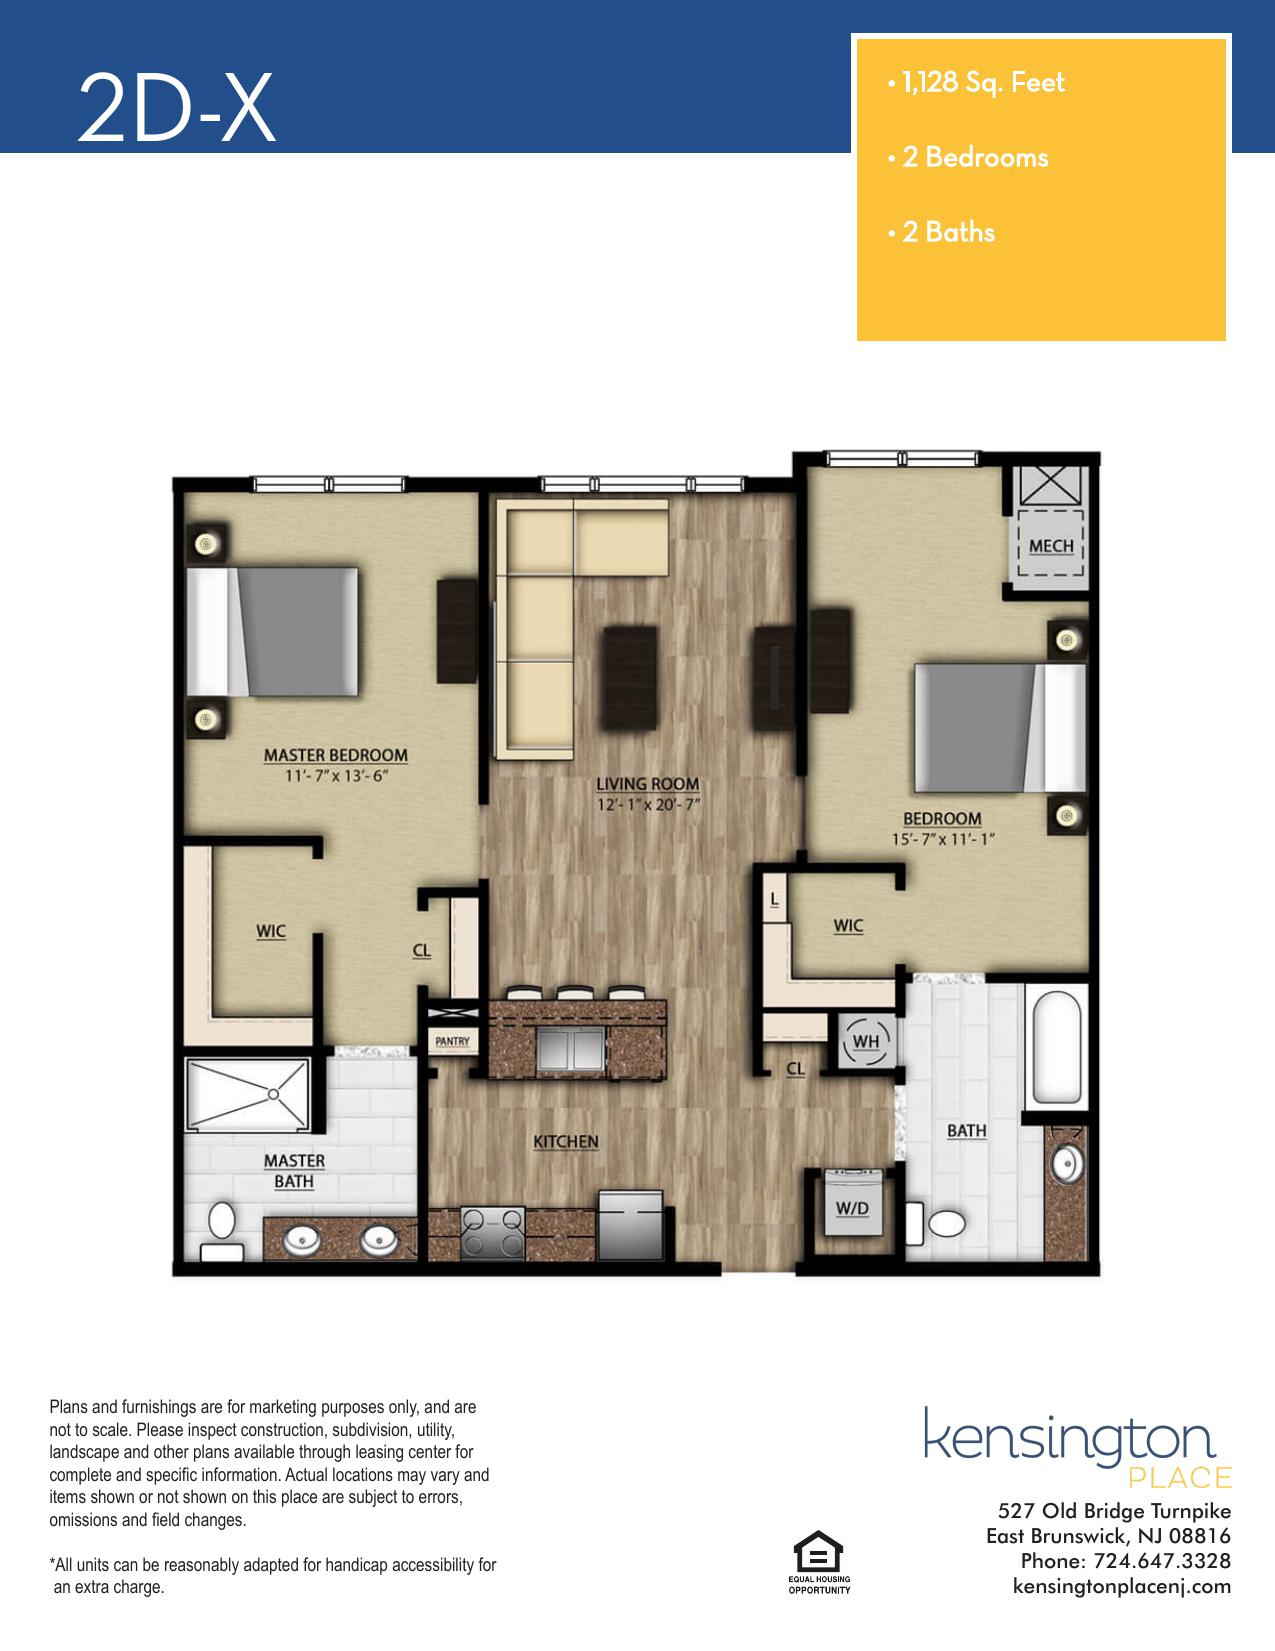 Kensington Place Apartment Floor Plan 2DX